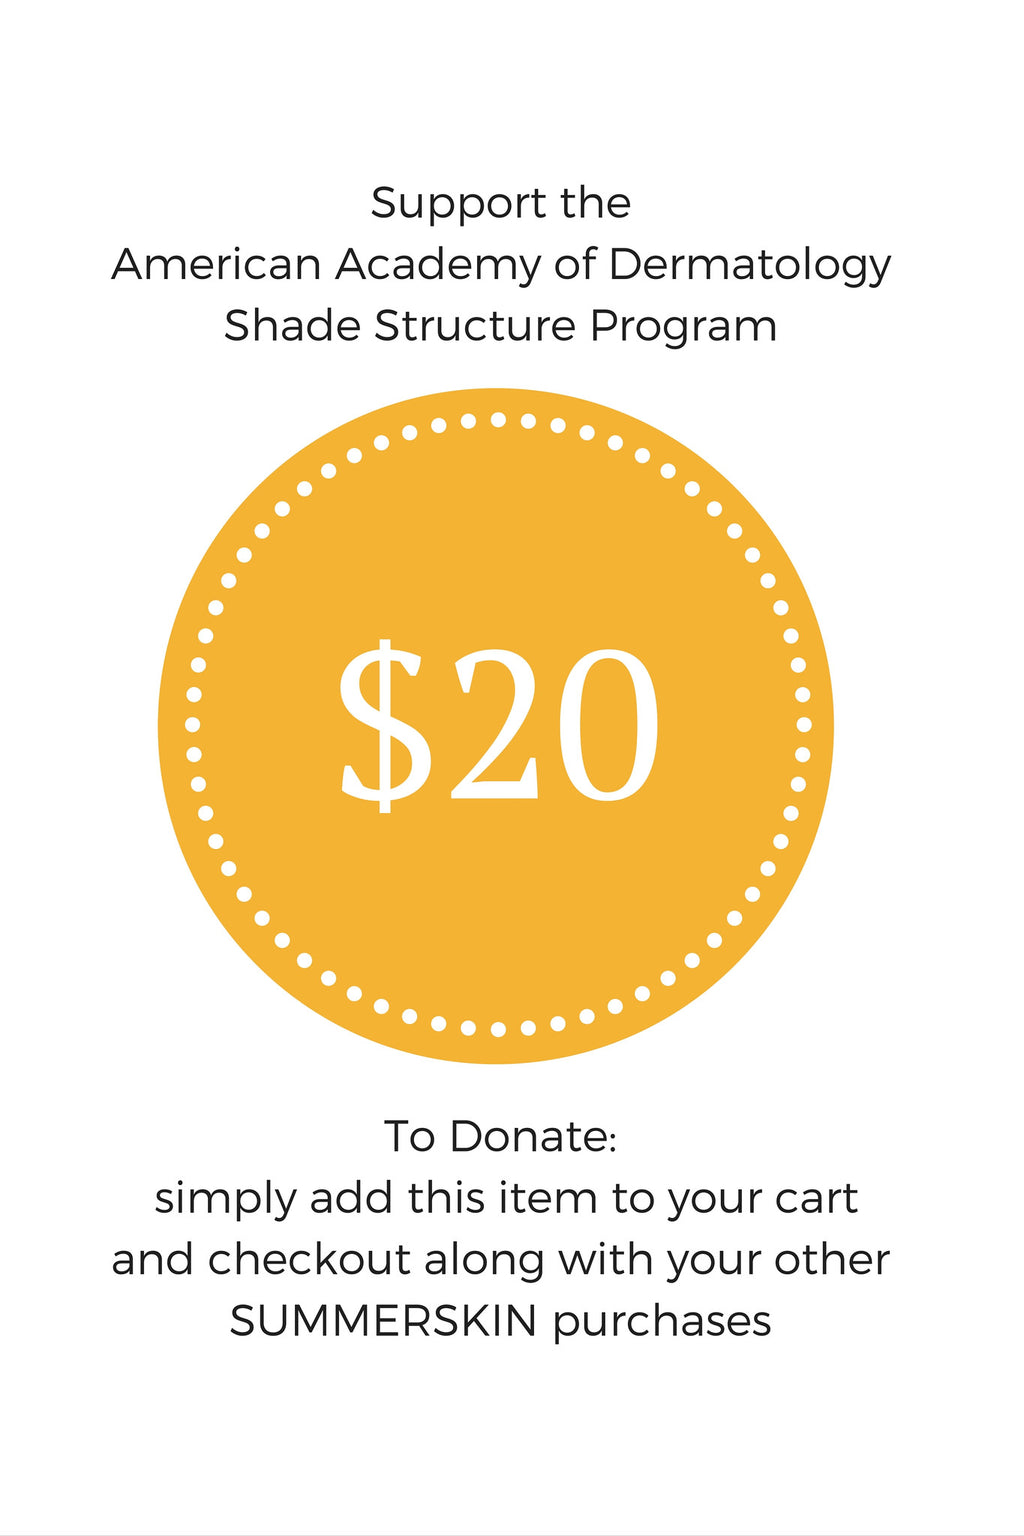 $20 to Help Build Shade Structures